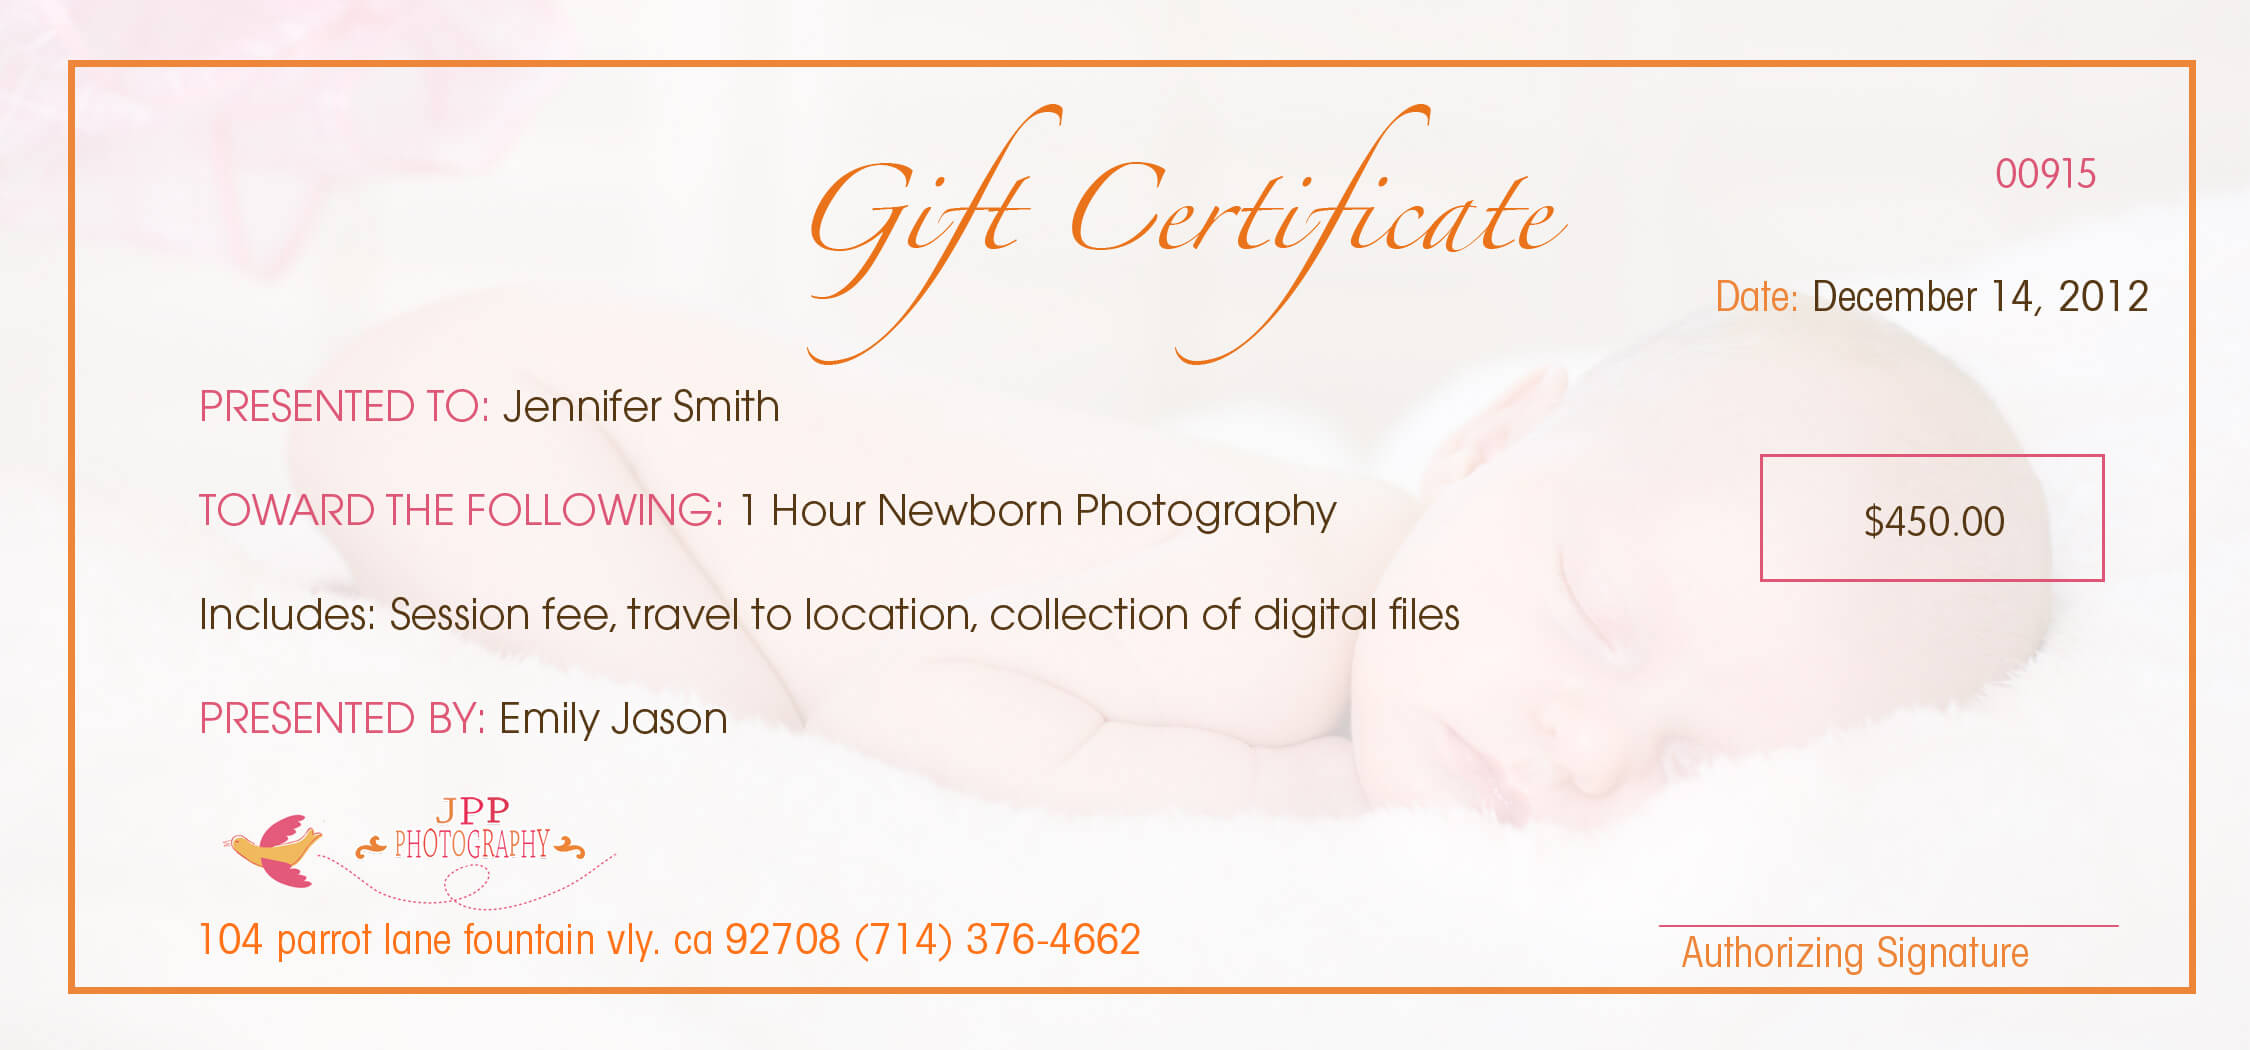 Orange County Christmas Portrait Photography Gift For Photoshoot Gift Certificate Template